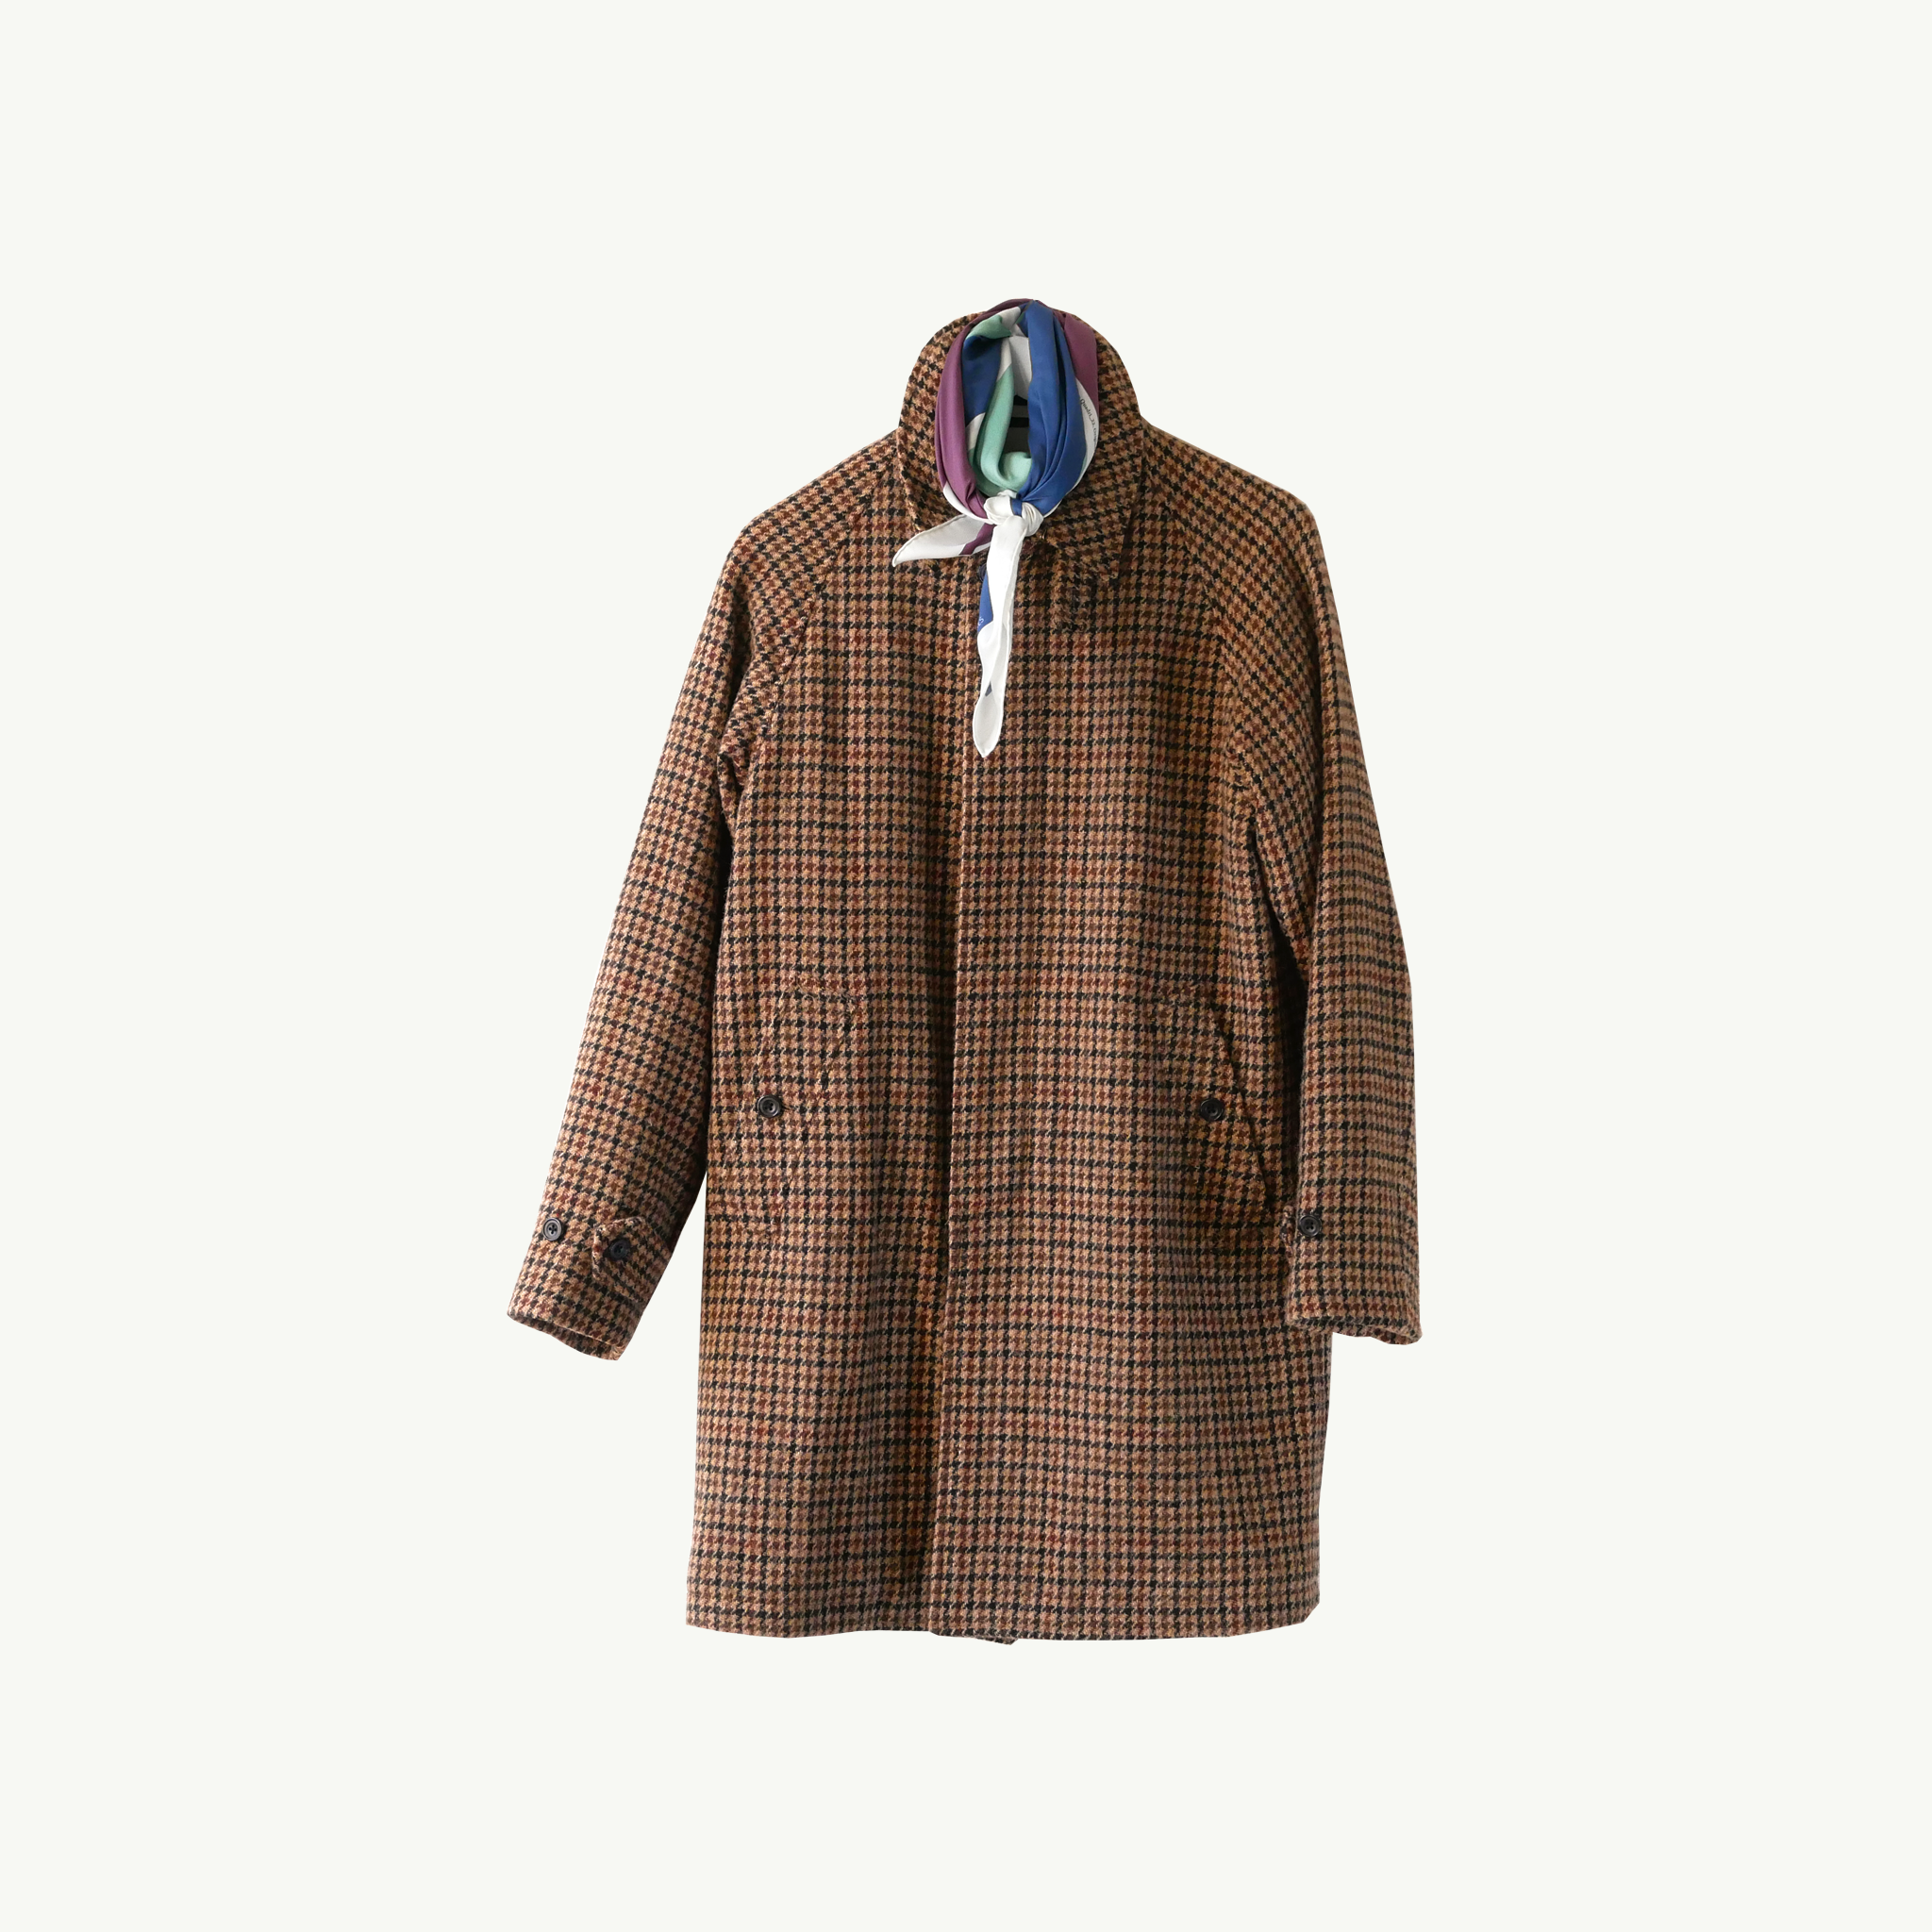 Les Belles Heures Arcipelago, 17h42 100% hand rolled cashmere, modal and silk scarf in our 90cm format worn on an houndstooth tweed Balmacaan coat